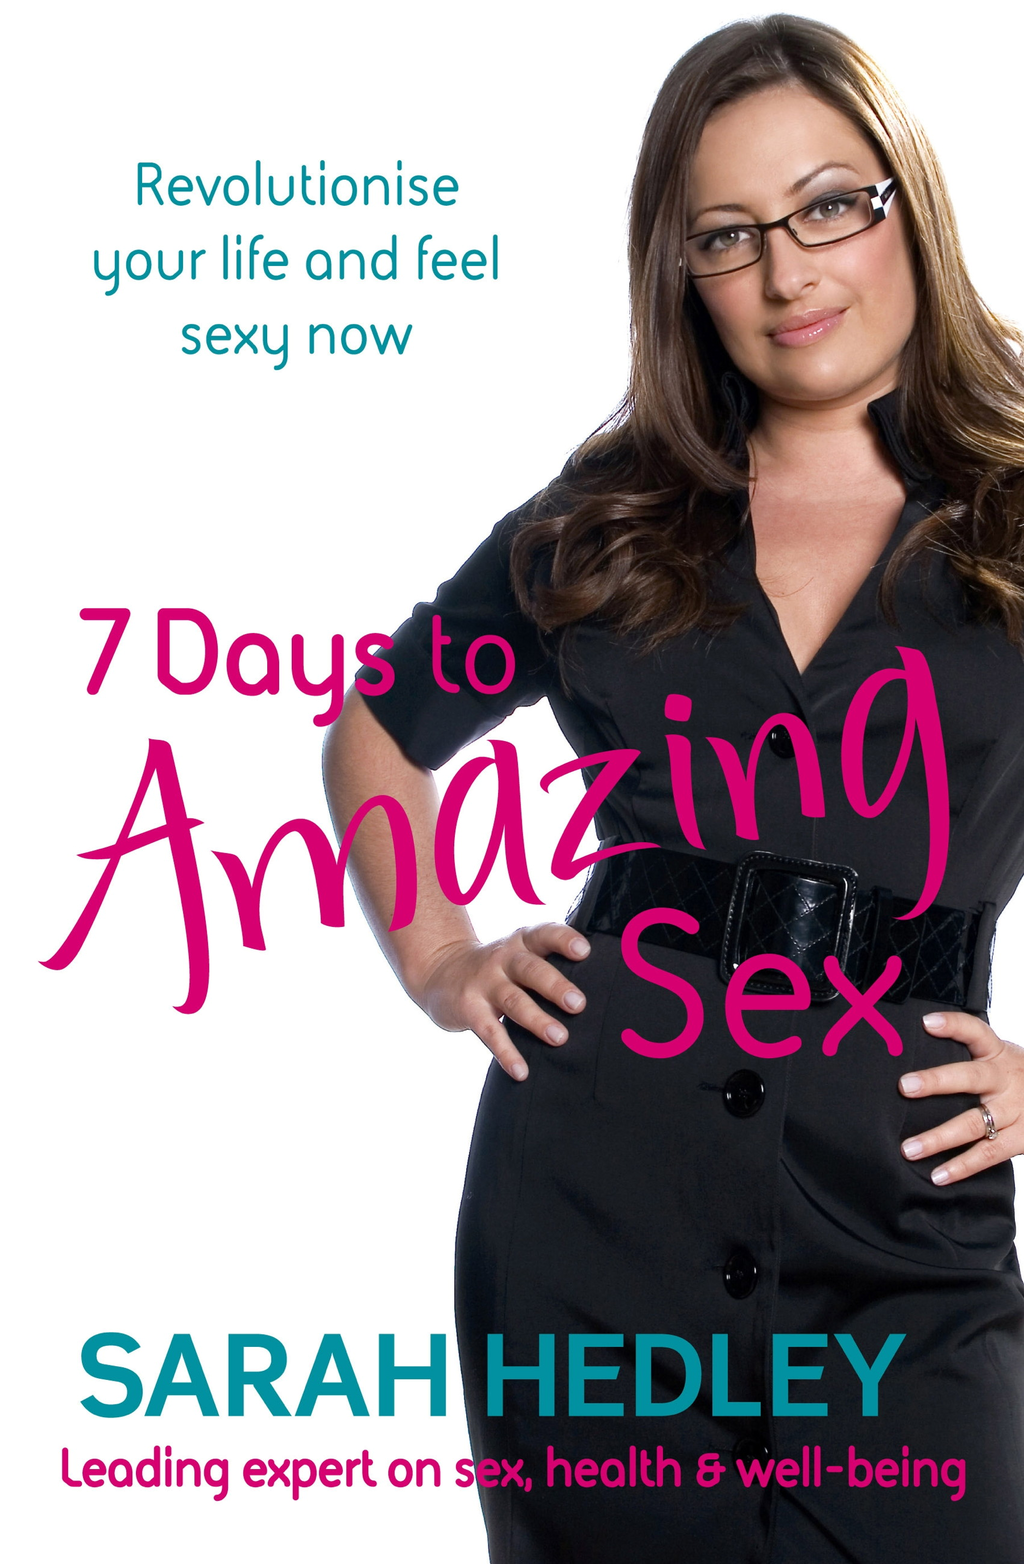 7 Days To Amazing Sex Revolutionise Your Life And Feel Sexy Now